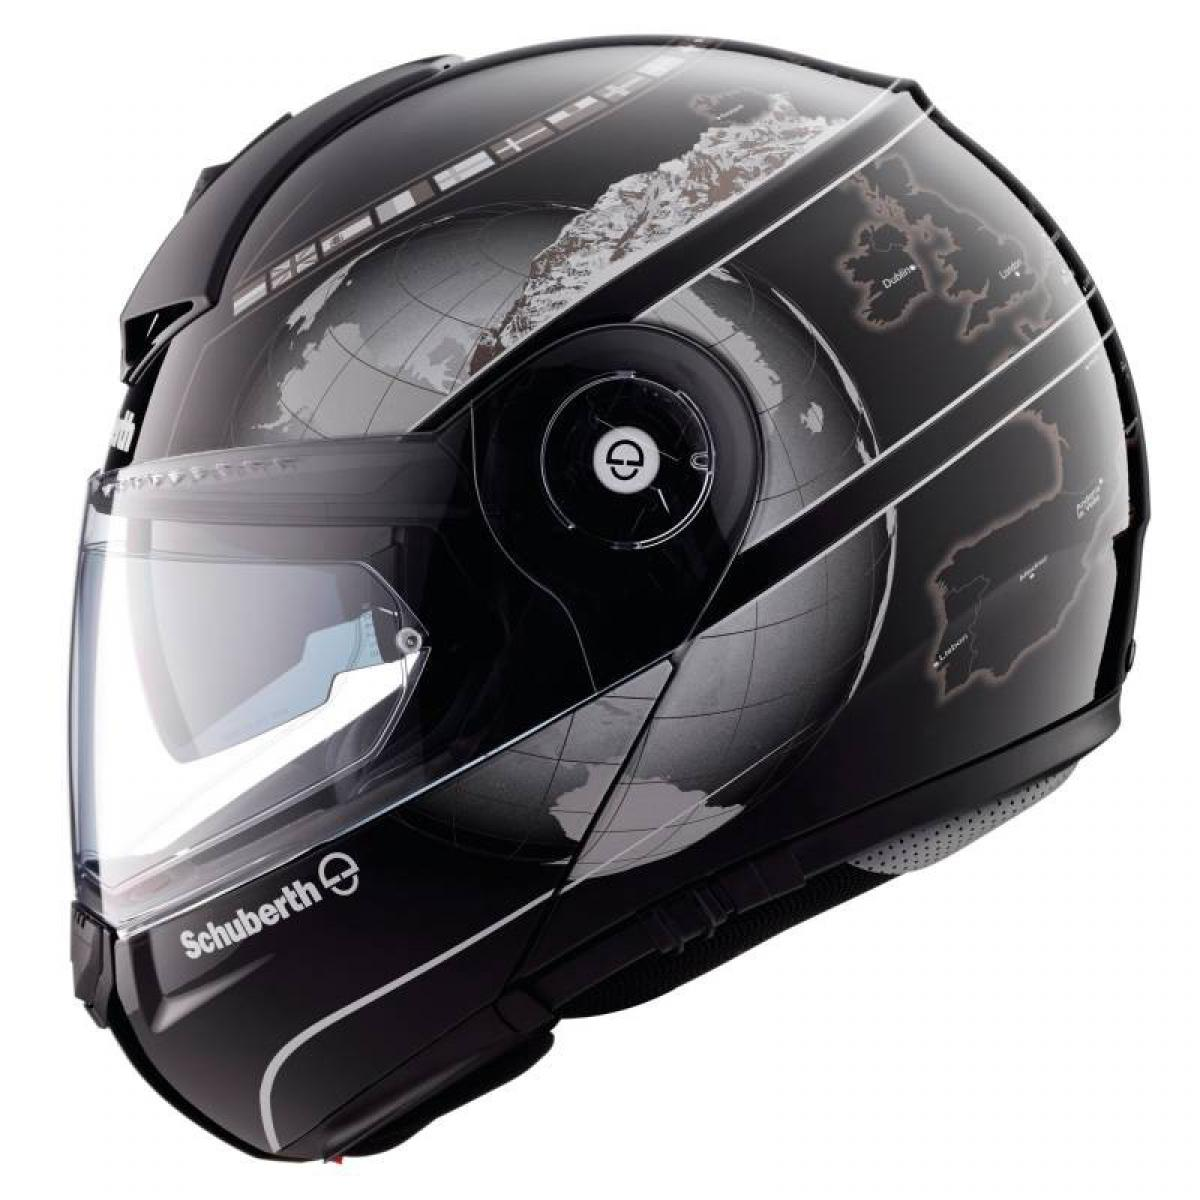 schuberth c3 pro flip front motorcycle helmet europe graphic reduced ebay. Black Bedroom Furniture Sets. Home Design Ideas